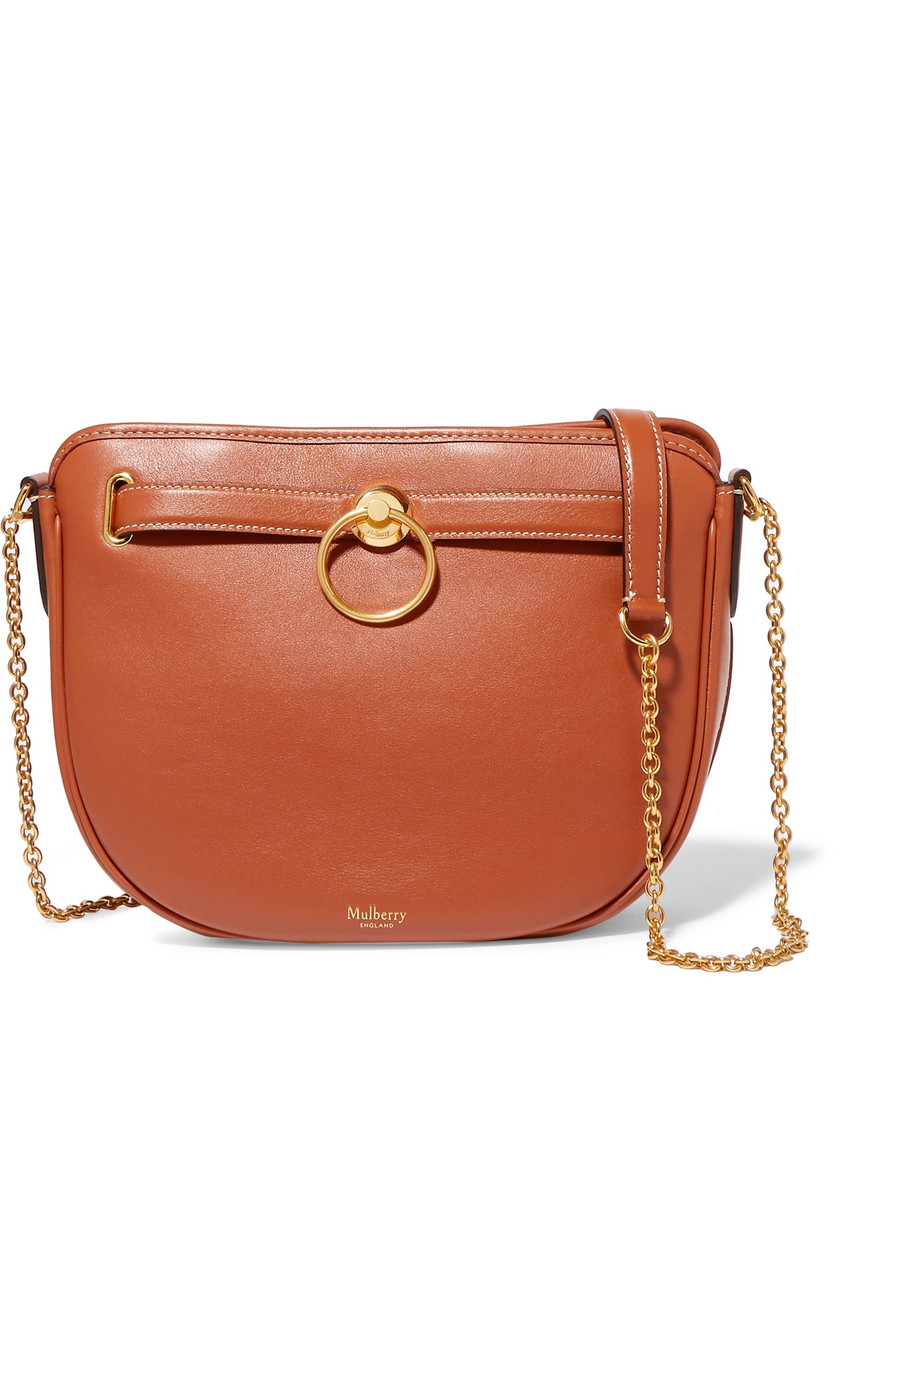 Mulberry, £895